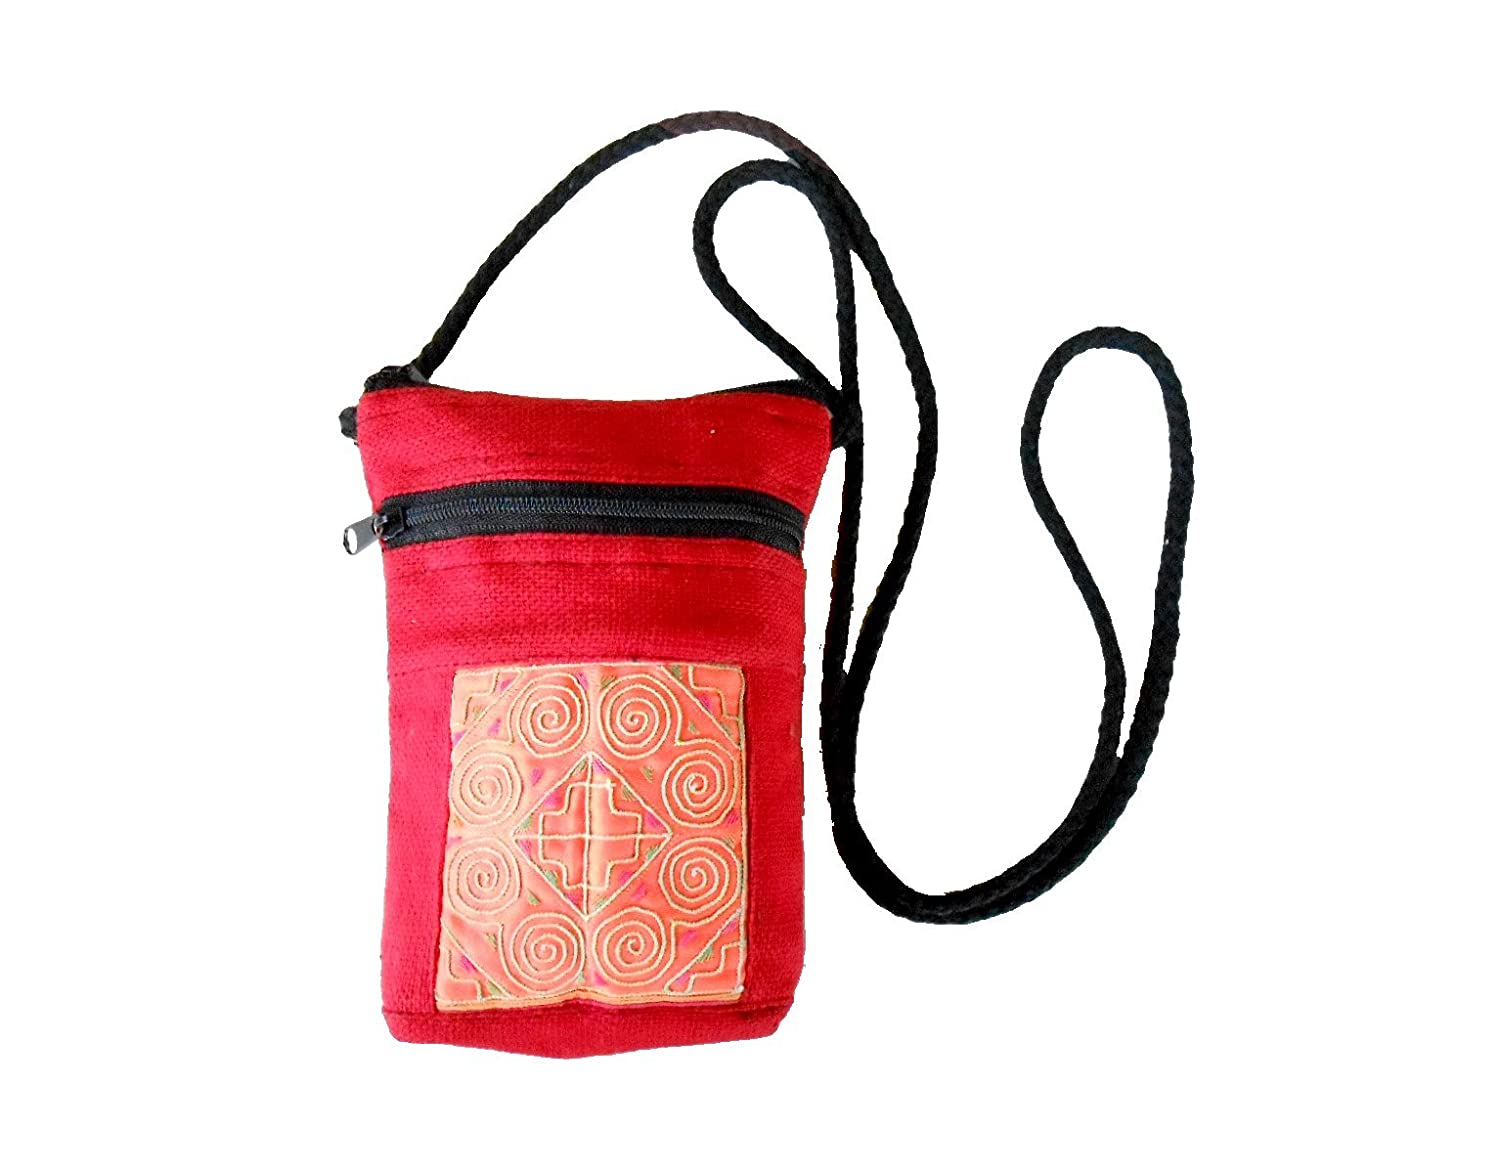 Khum Wieng Kham Women's Red Cell Phone Bag Vintage Hemp Fabric Hand Embroidered Textiles Quilted by Hmong Hill tribe Thailand